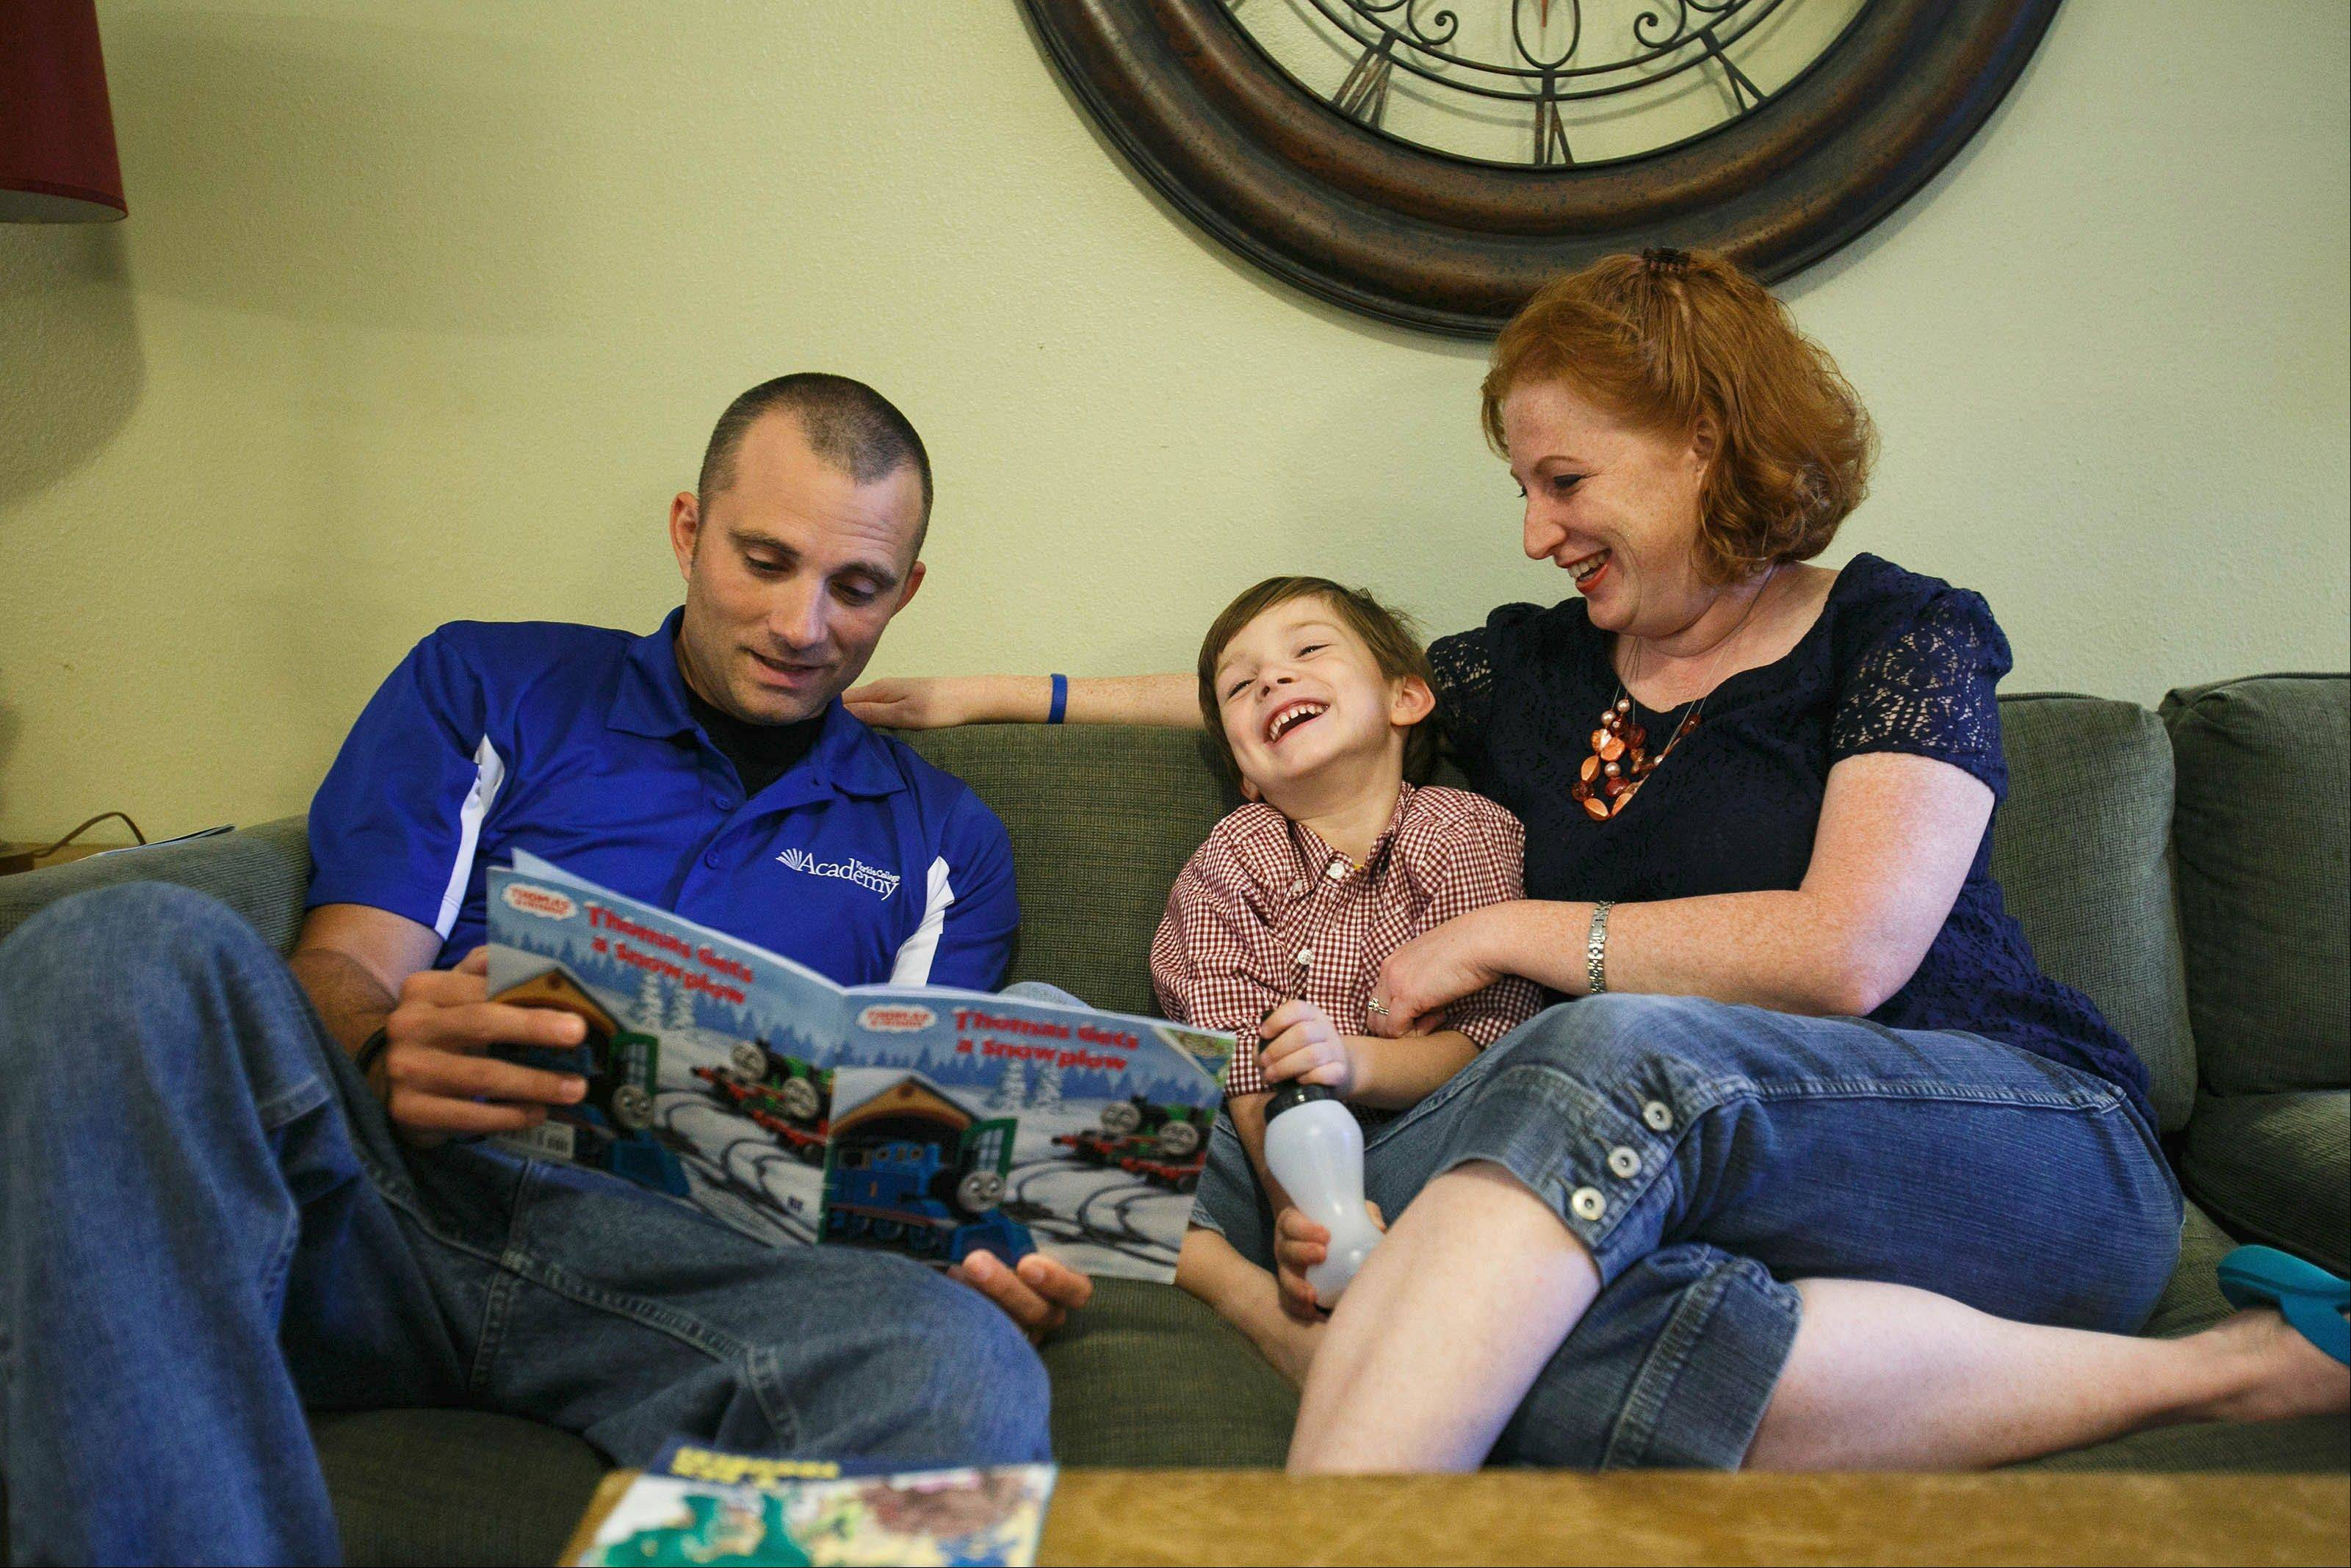 Josh Hastings, left, who was diagnosed with Stage 3 colon cancer, reads to his son Conner while relaxing on the couch with his wife, Andrea, at their home.